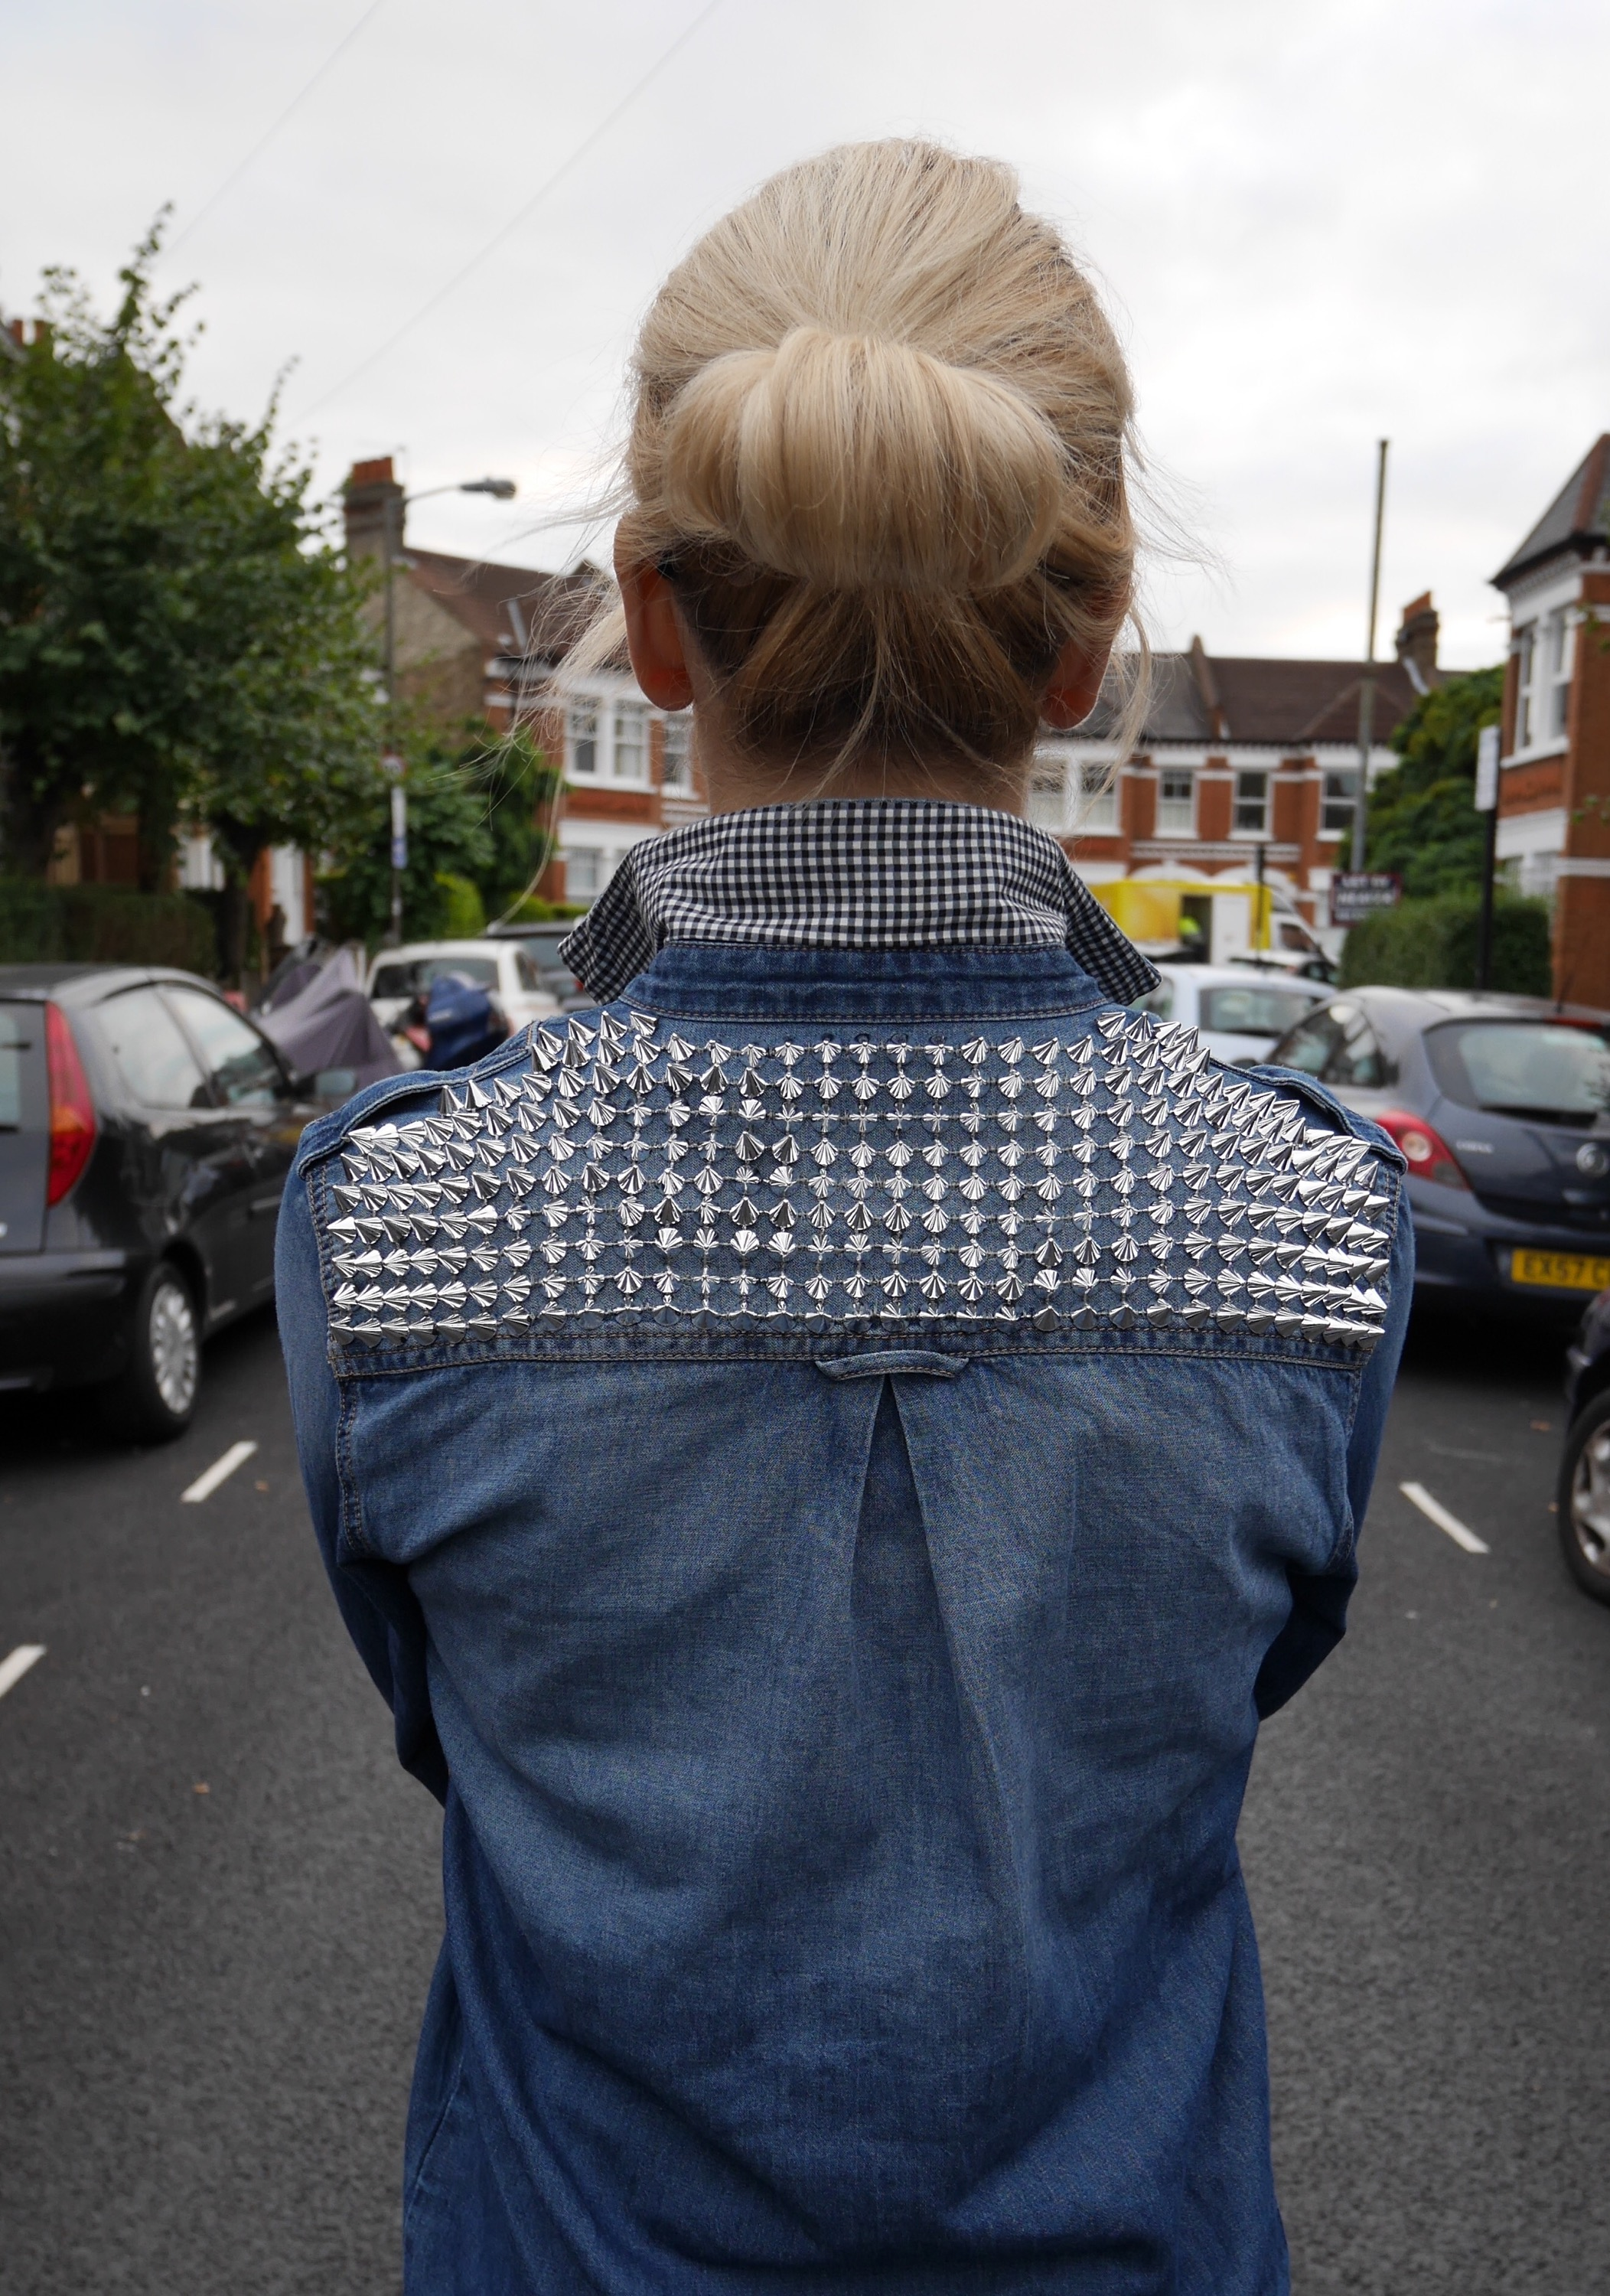 customised denim shirt | studs and gingham | cocomamastyle